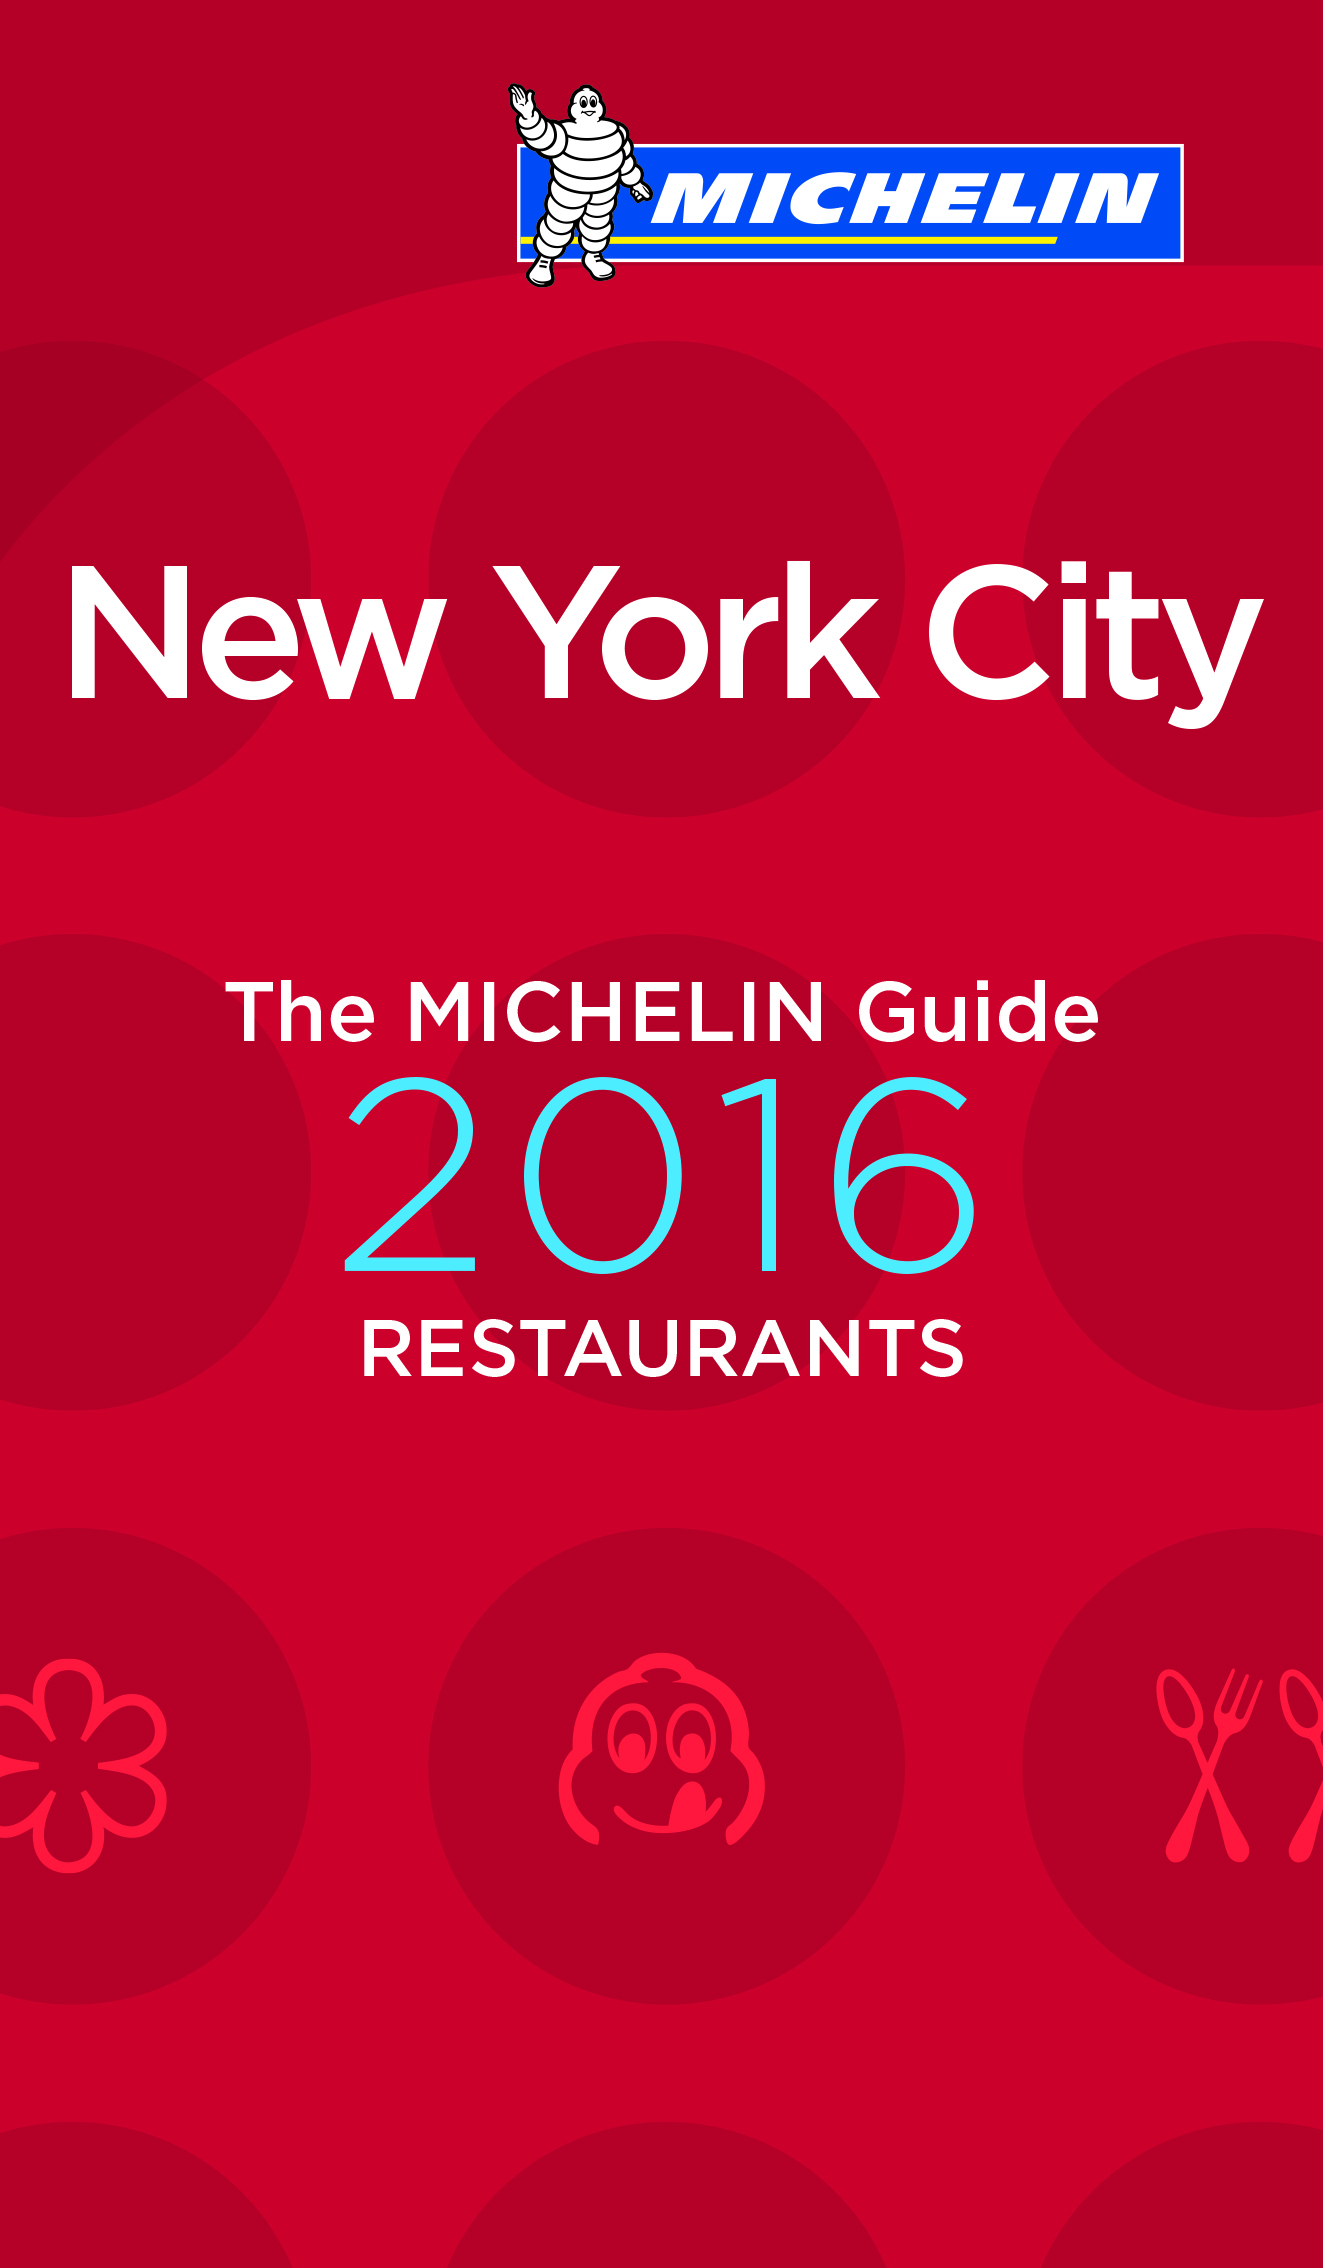 Michelin_Guide_NYC_2016.jpg